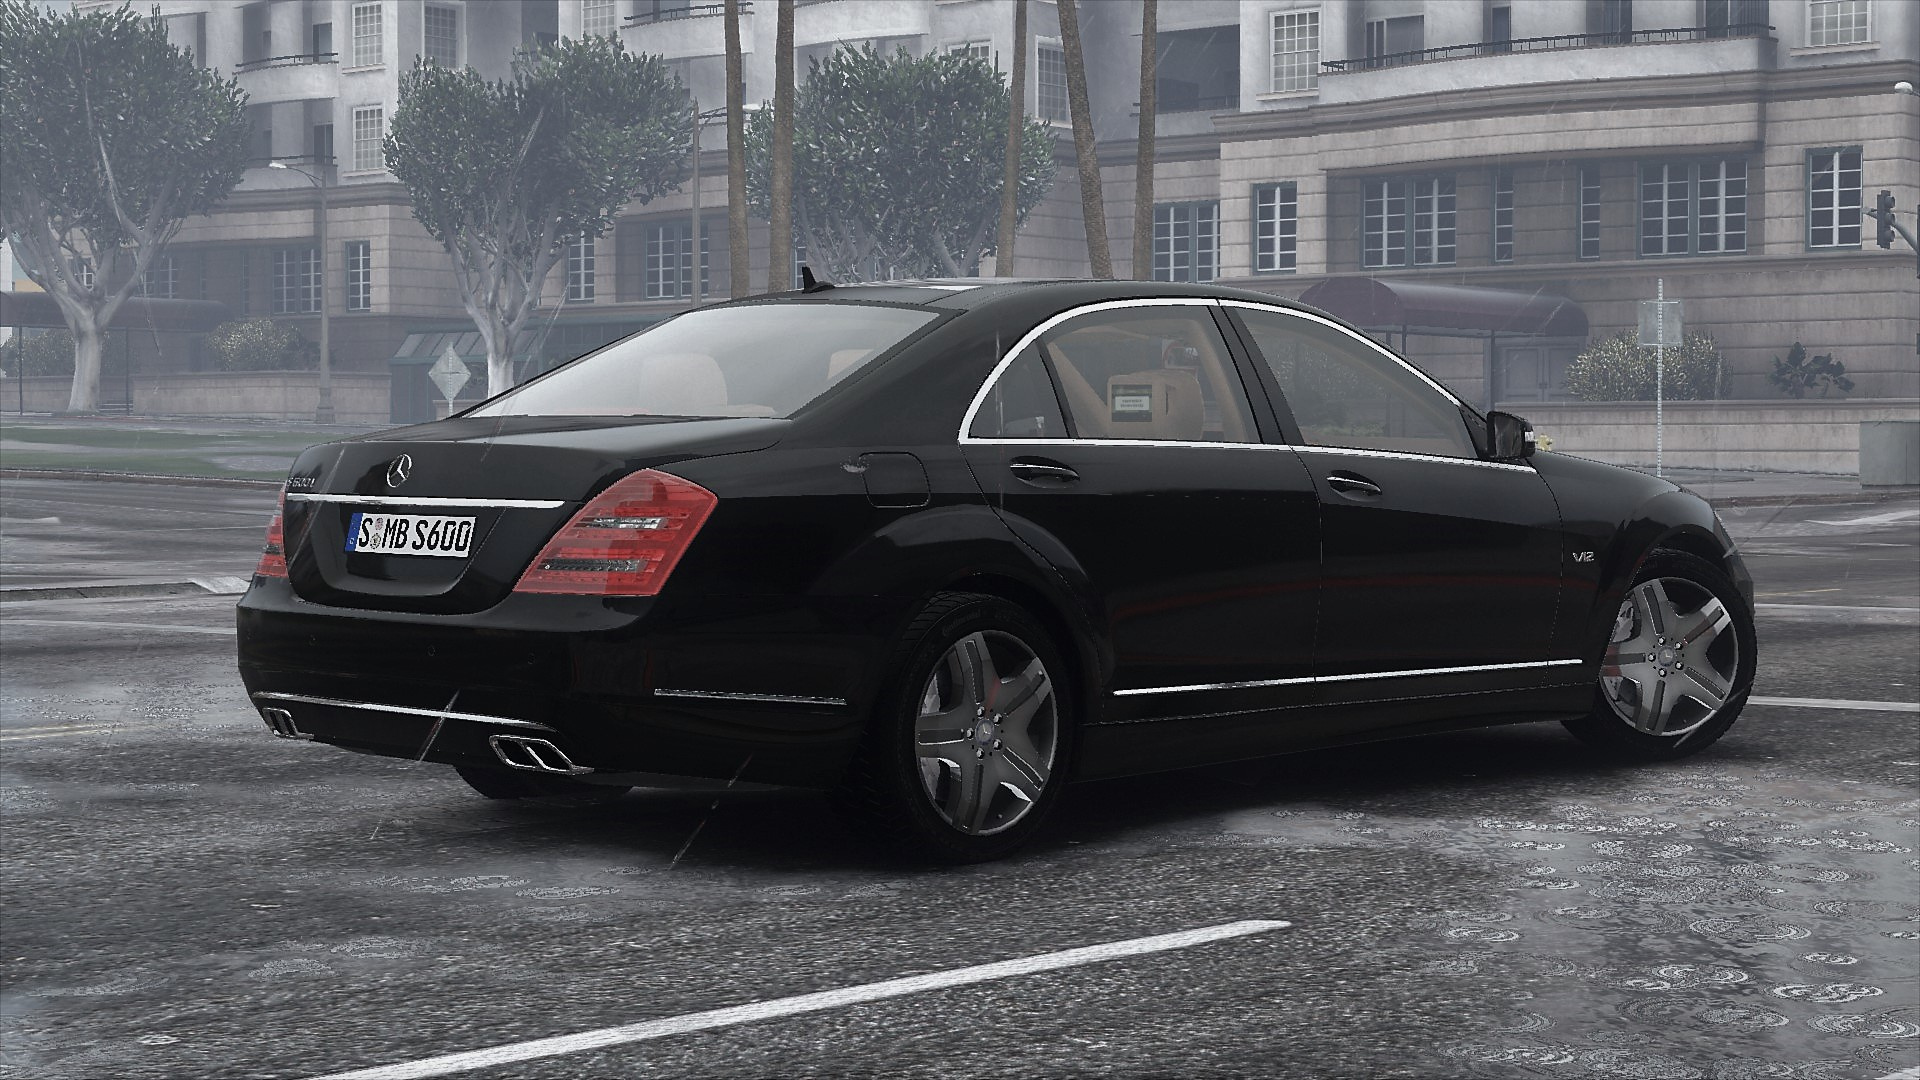 2010 mercedes benz s600 l w221 add on tuning gta5. Black Bedroom Furniture Sets. Home Design Ideas